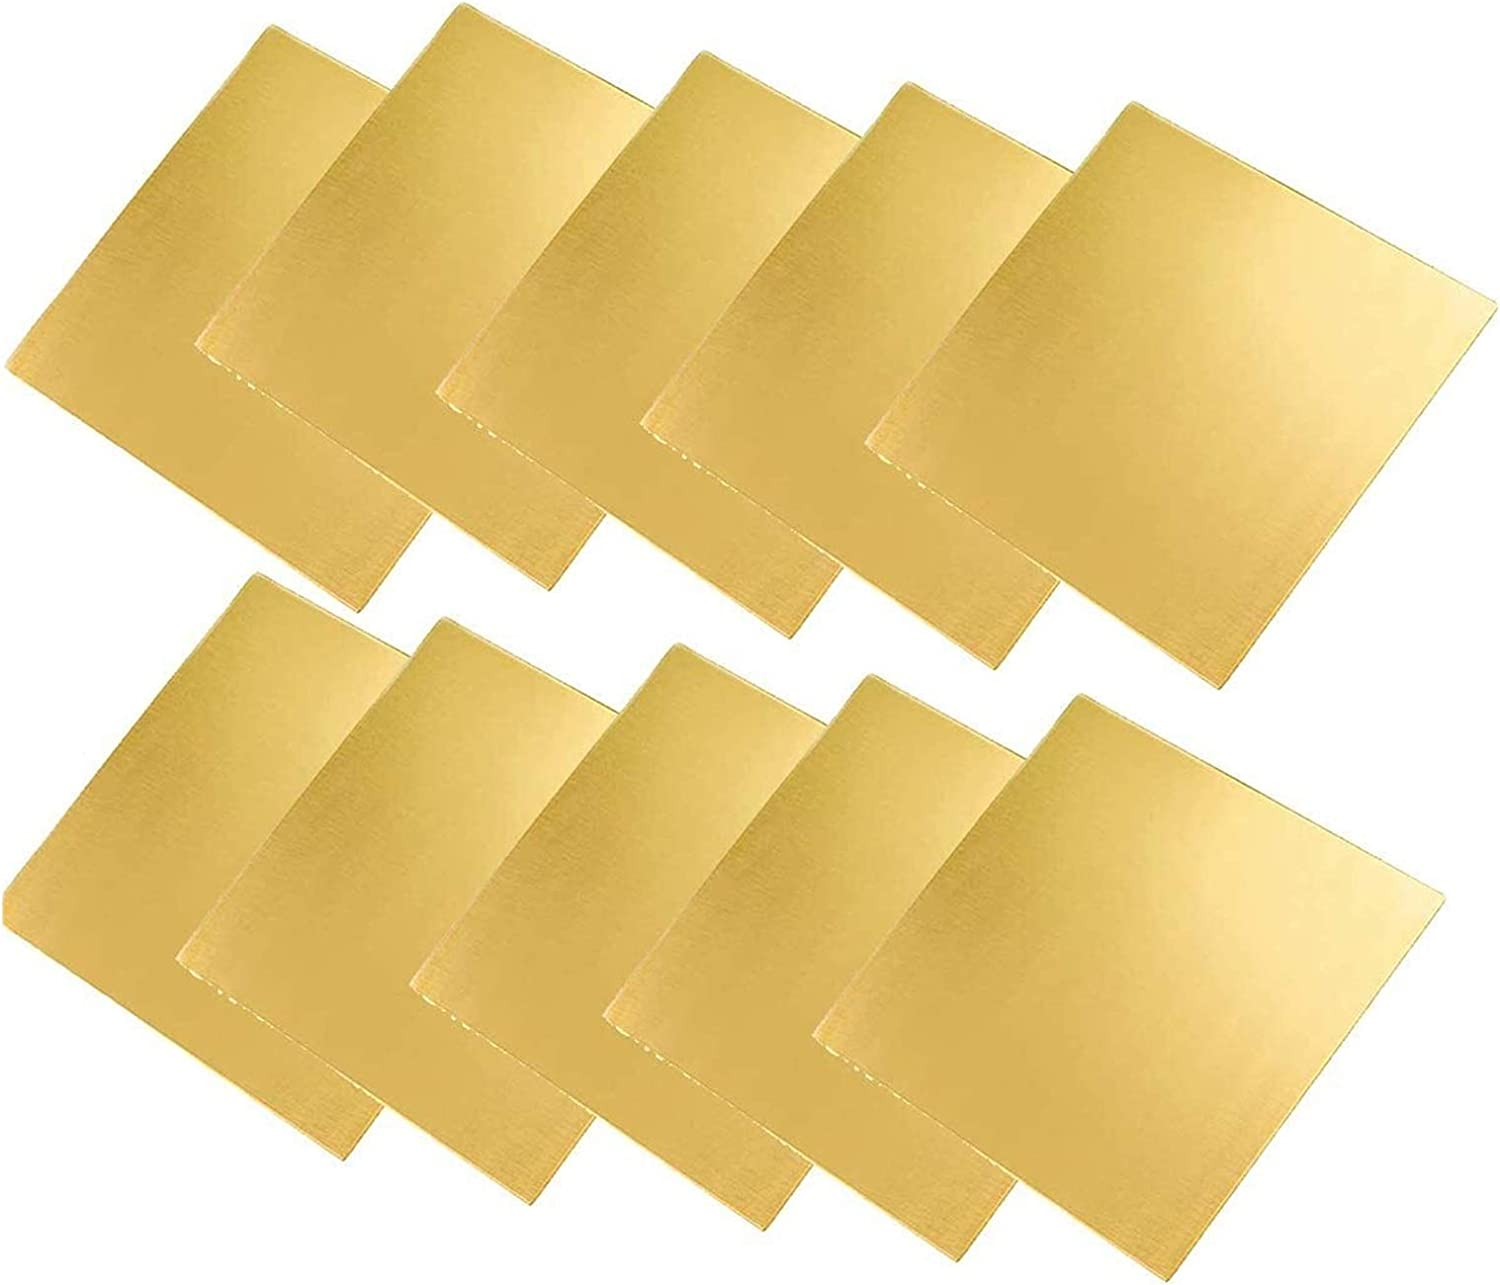 Special price for a limited time Wzqwzj Brass Metal Sheet Long-awaited Rich 0.8Mmx50m Specifications and Sizes